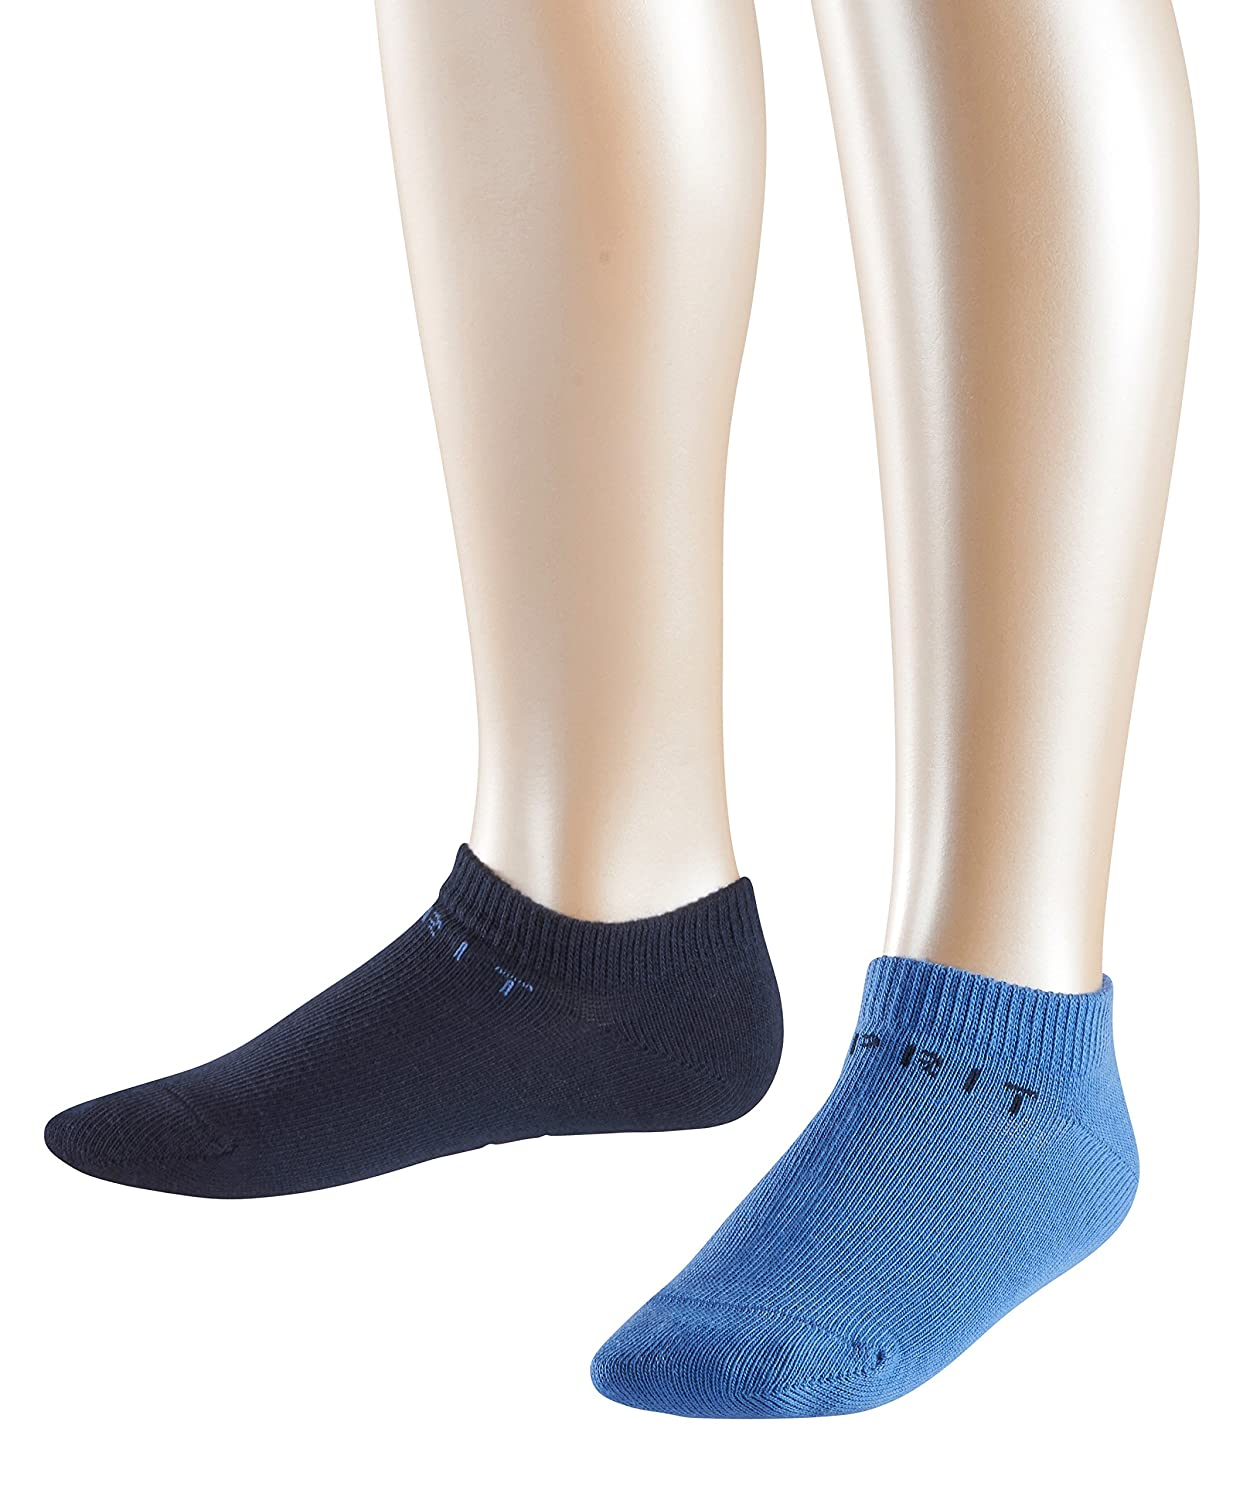 ESPRIT Boy's Foot Logo Ankle Socks pack of 2 19042